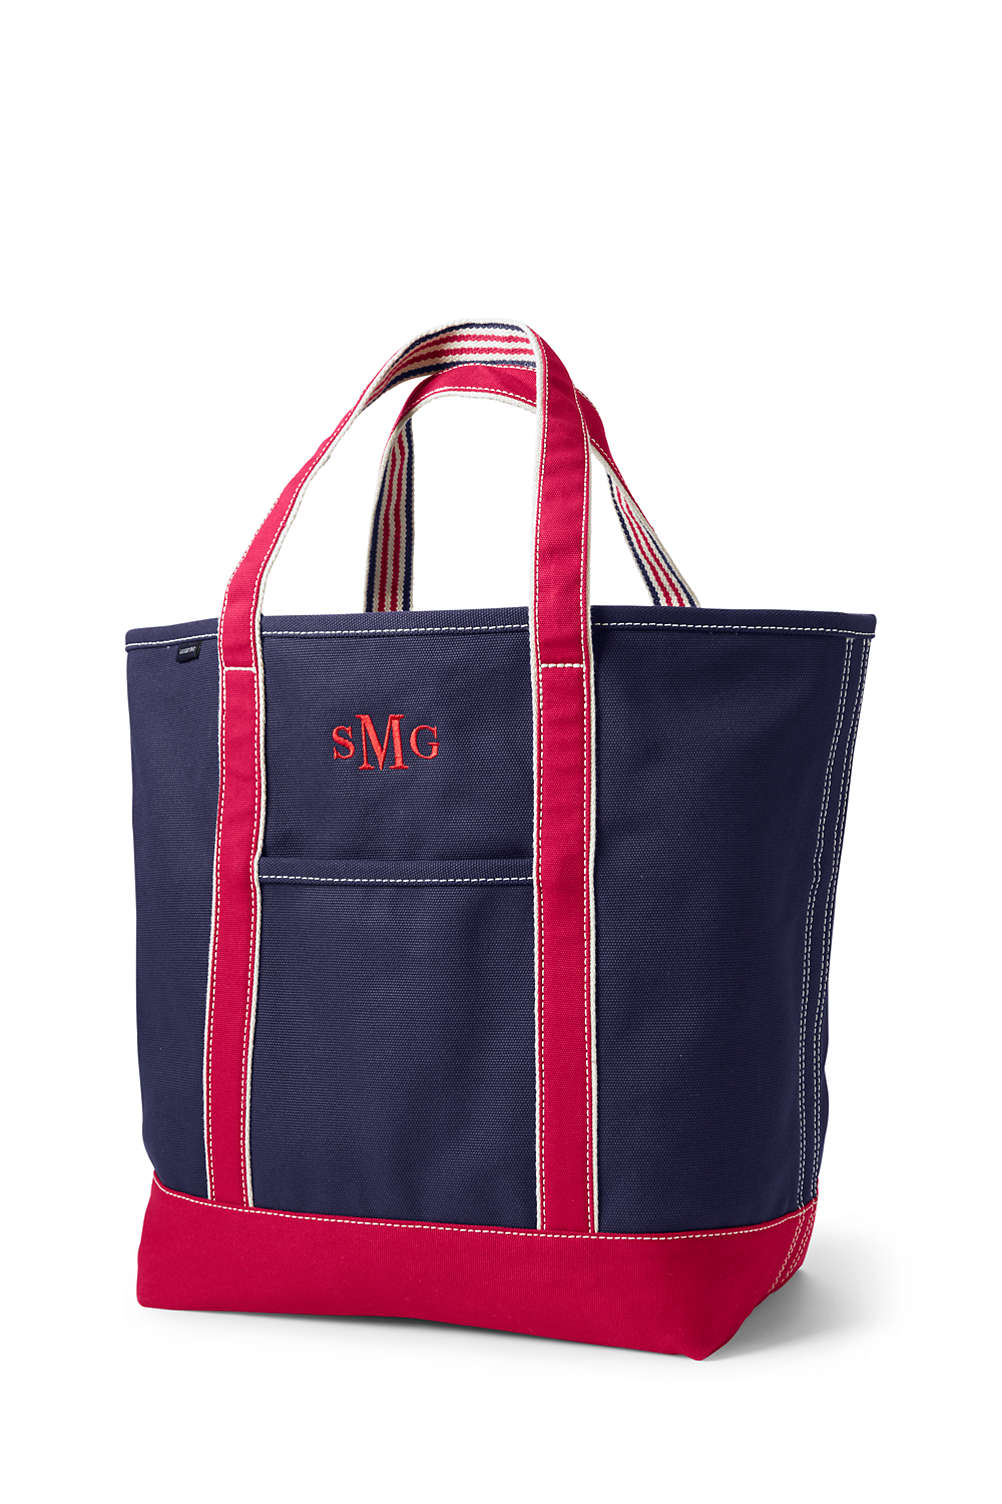 School Uniform Large Two Tone Open Top Canvas Tote Bag